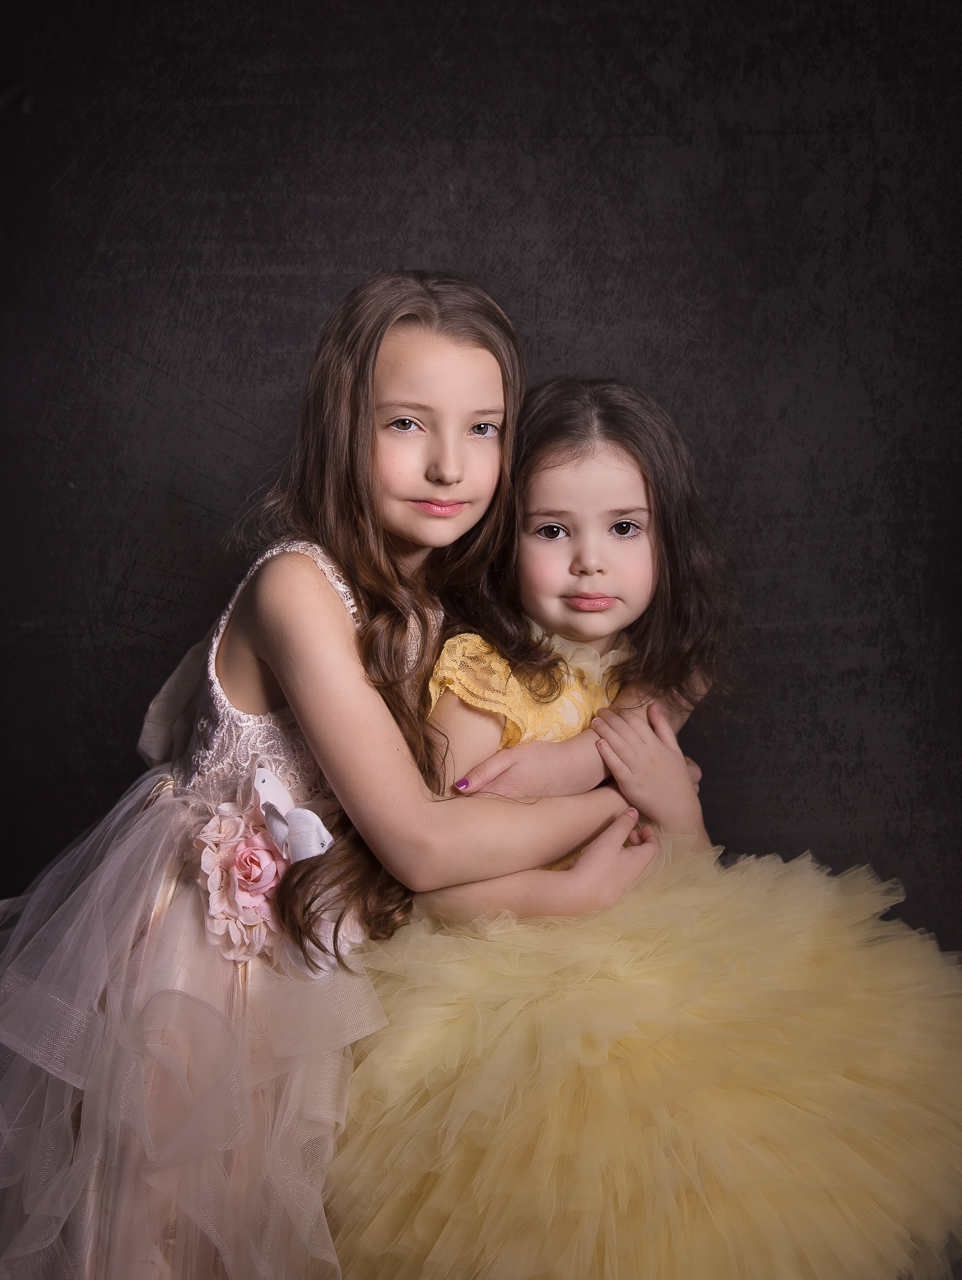 nyc family photoshoot instudio princess gowns sisters-2388.jpg